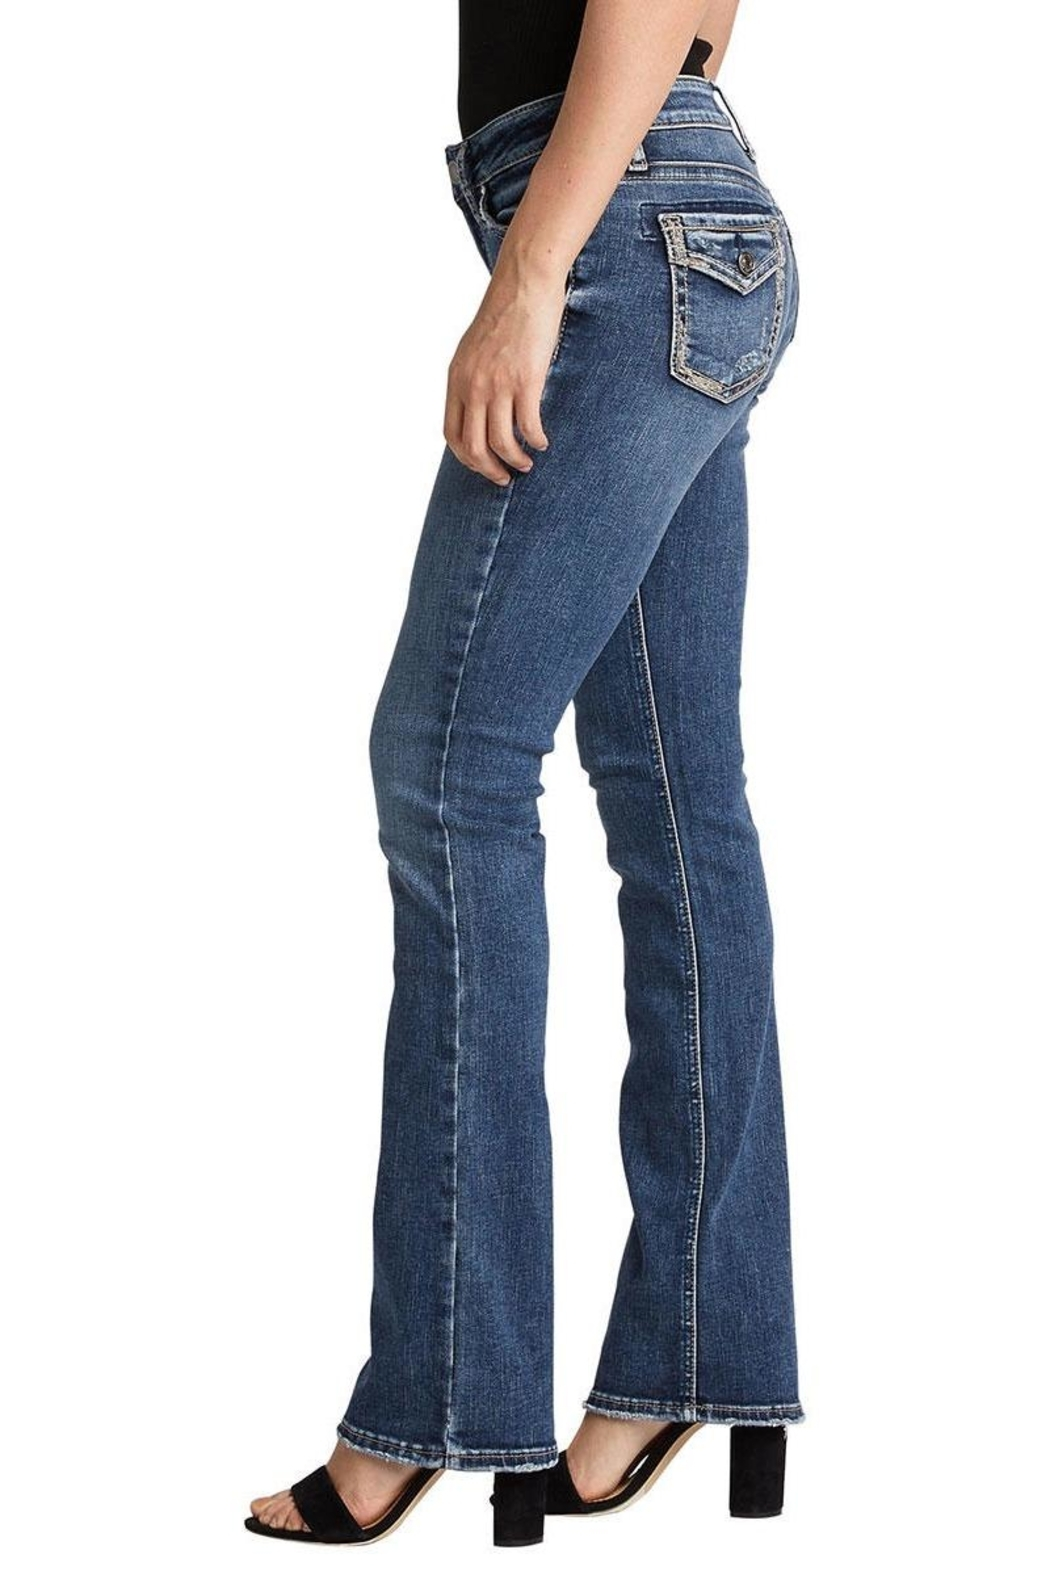 Silver Jeans Co. Boot Cut Jeans - Side Cropped Image